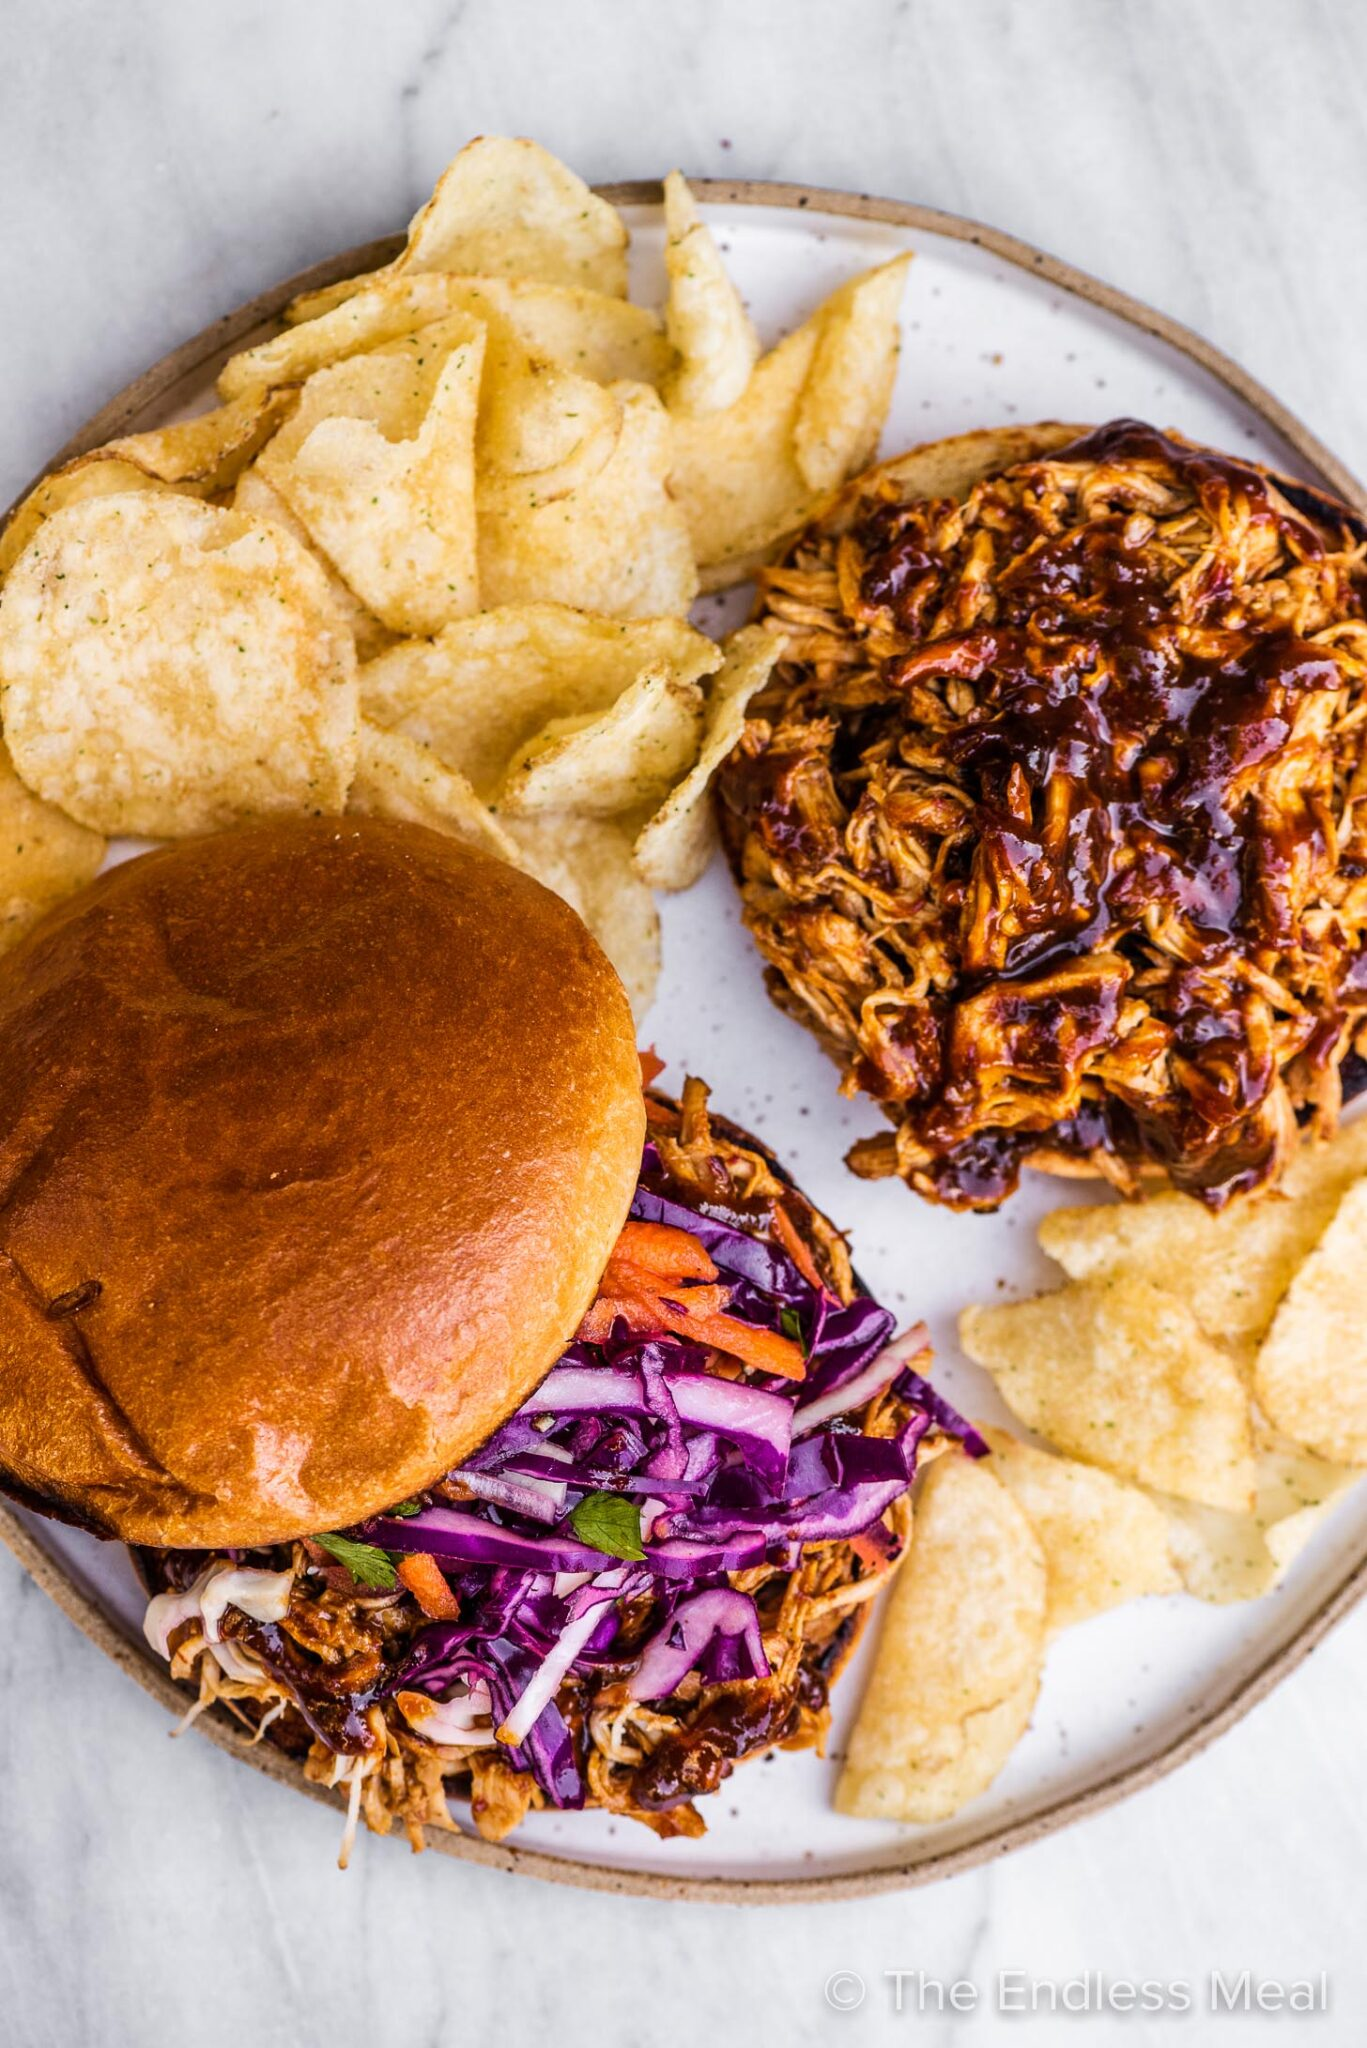 Two pulled chicken sandwiches on a plate.